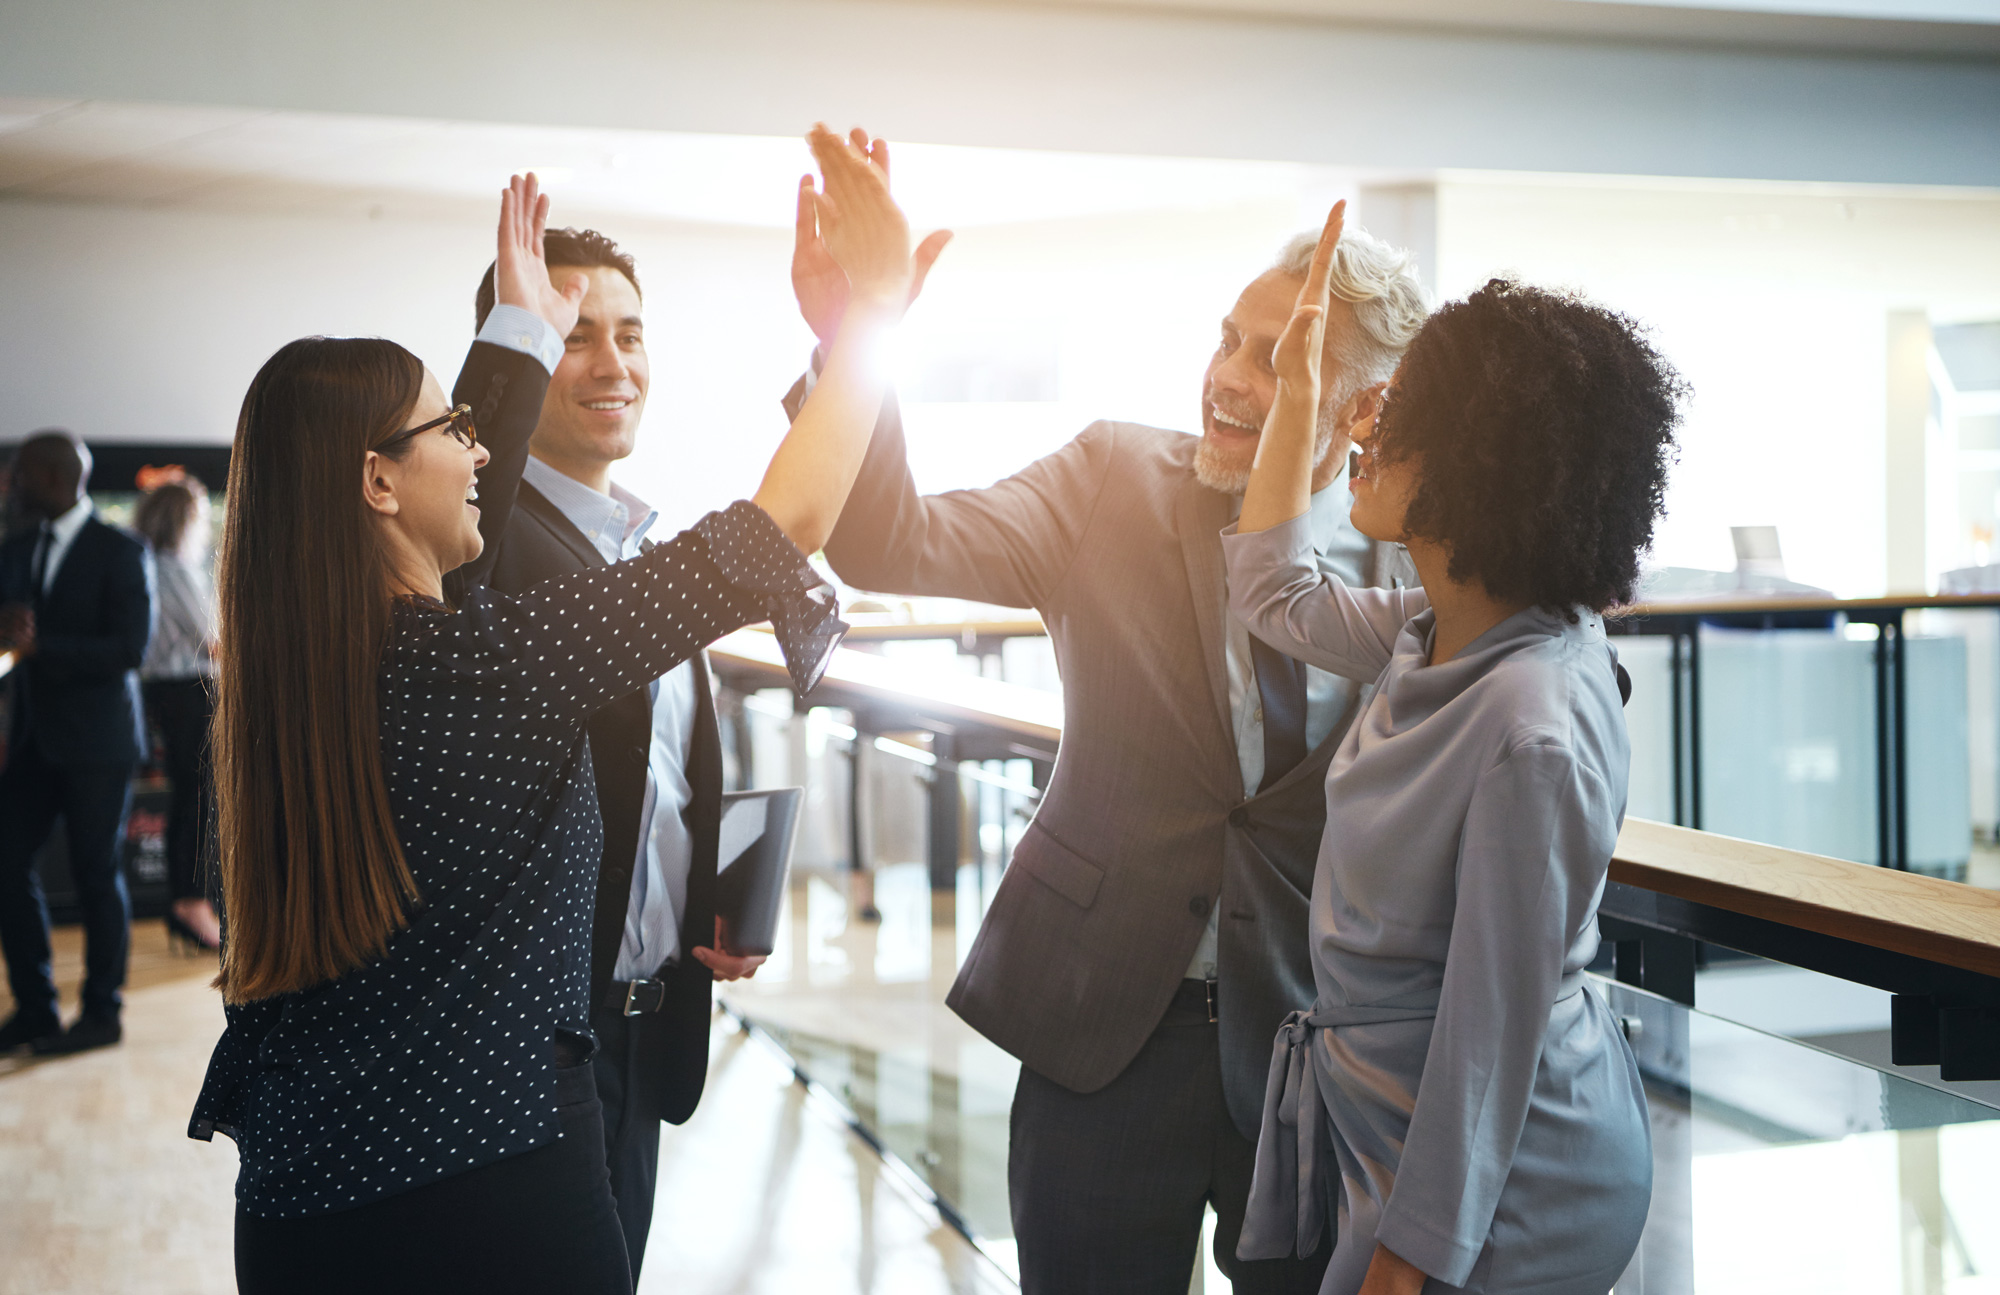 Diverse group of smiling businesspeople high fiving each other while standing together in a corridor of a modern office building